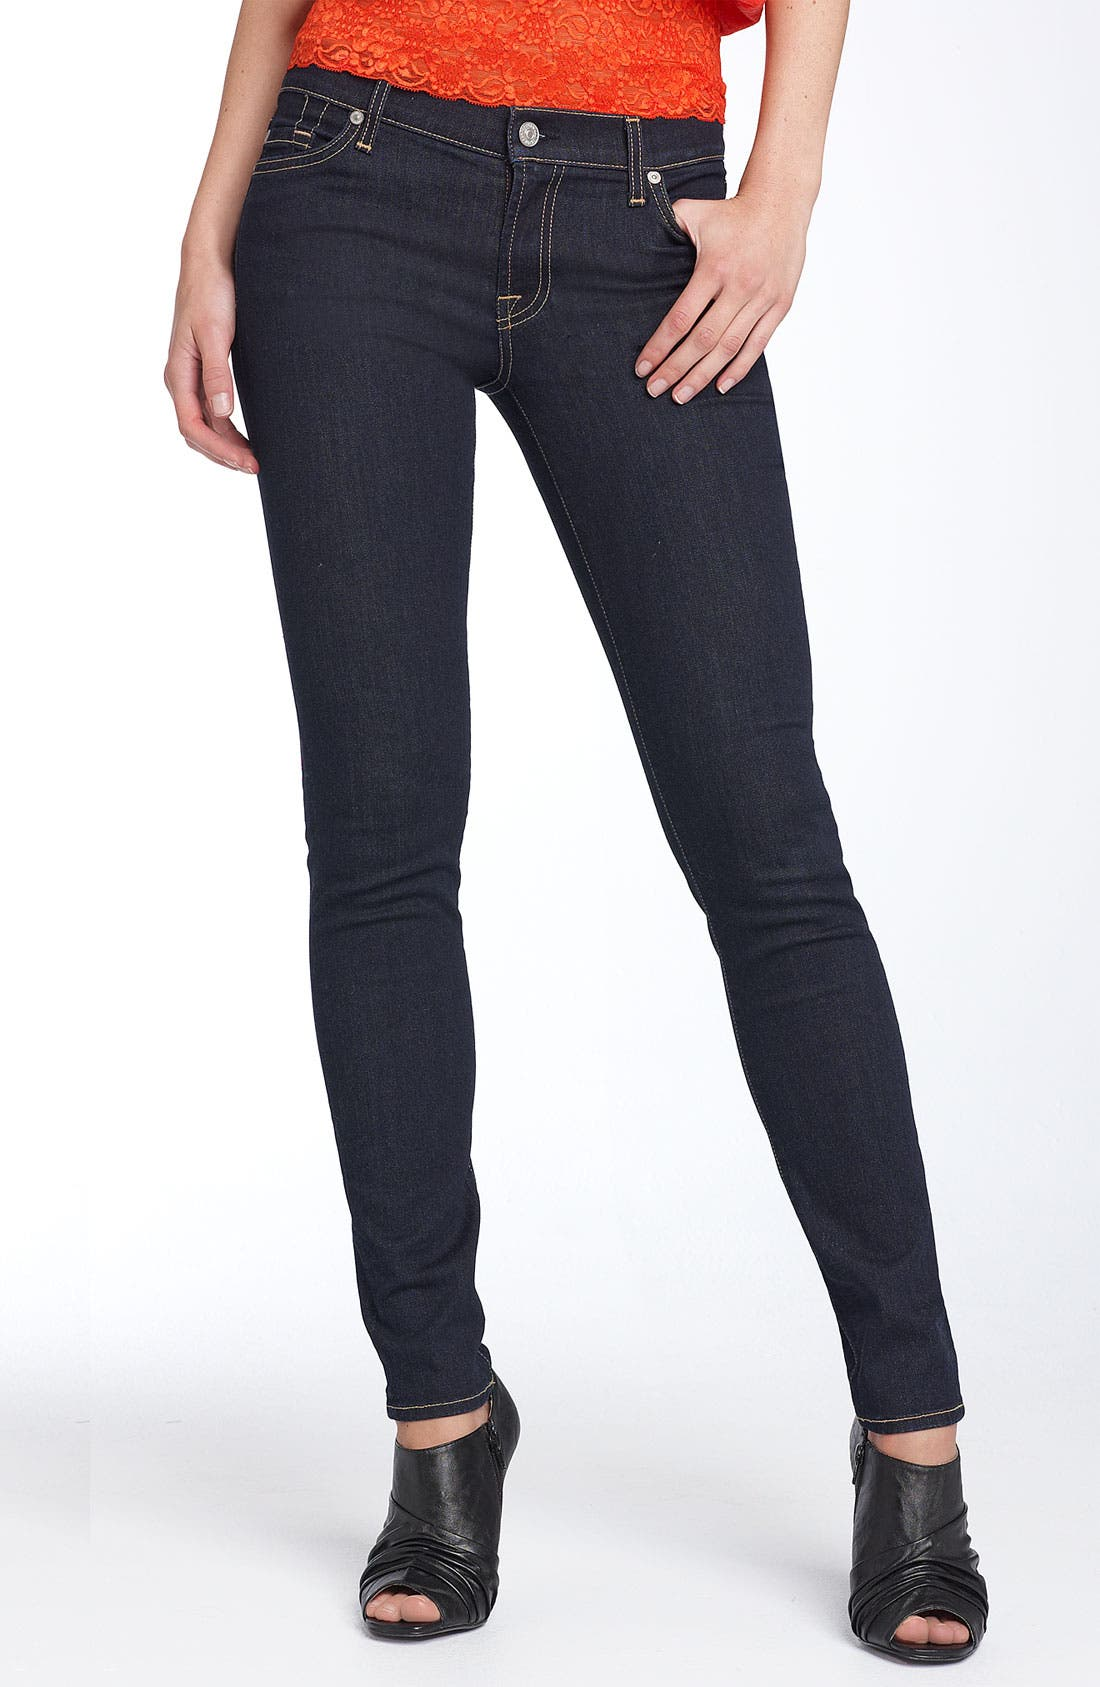 Alternate Image 1 Selected - 7 For All Mankind® 'The Skinny' Stretch Jeans (Rinsed Indigo)